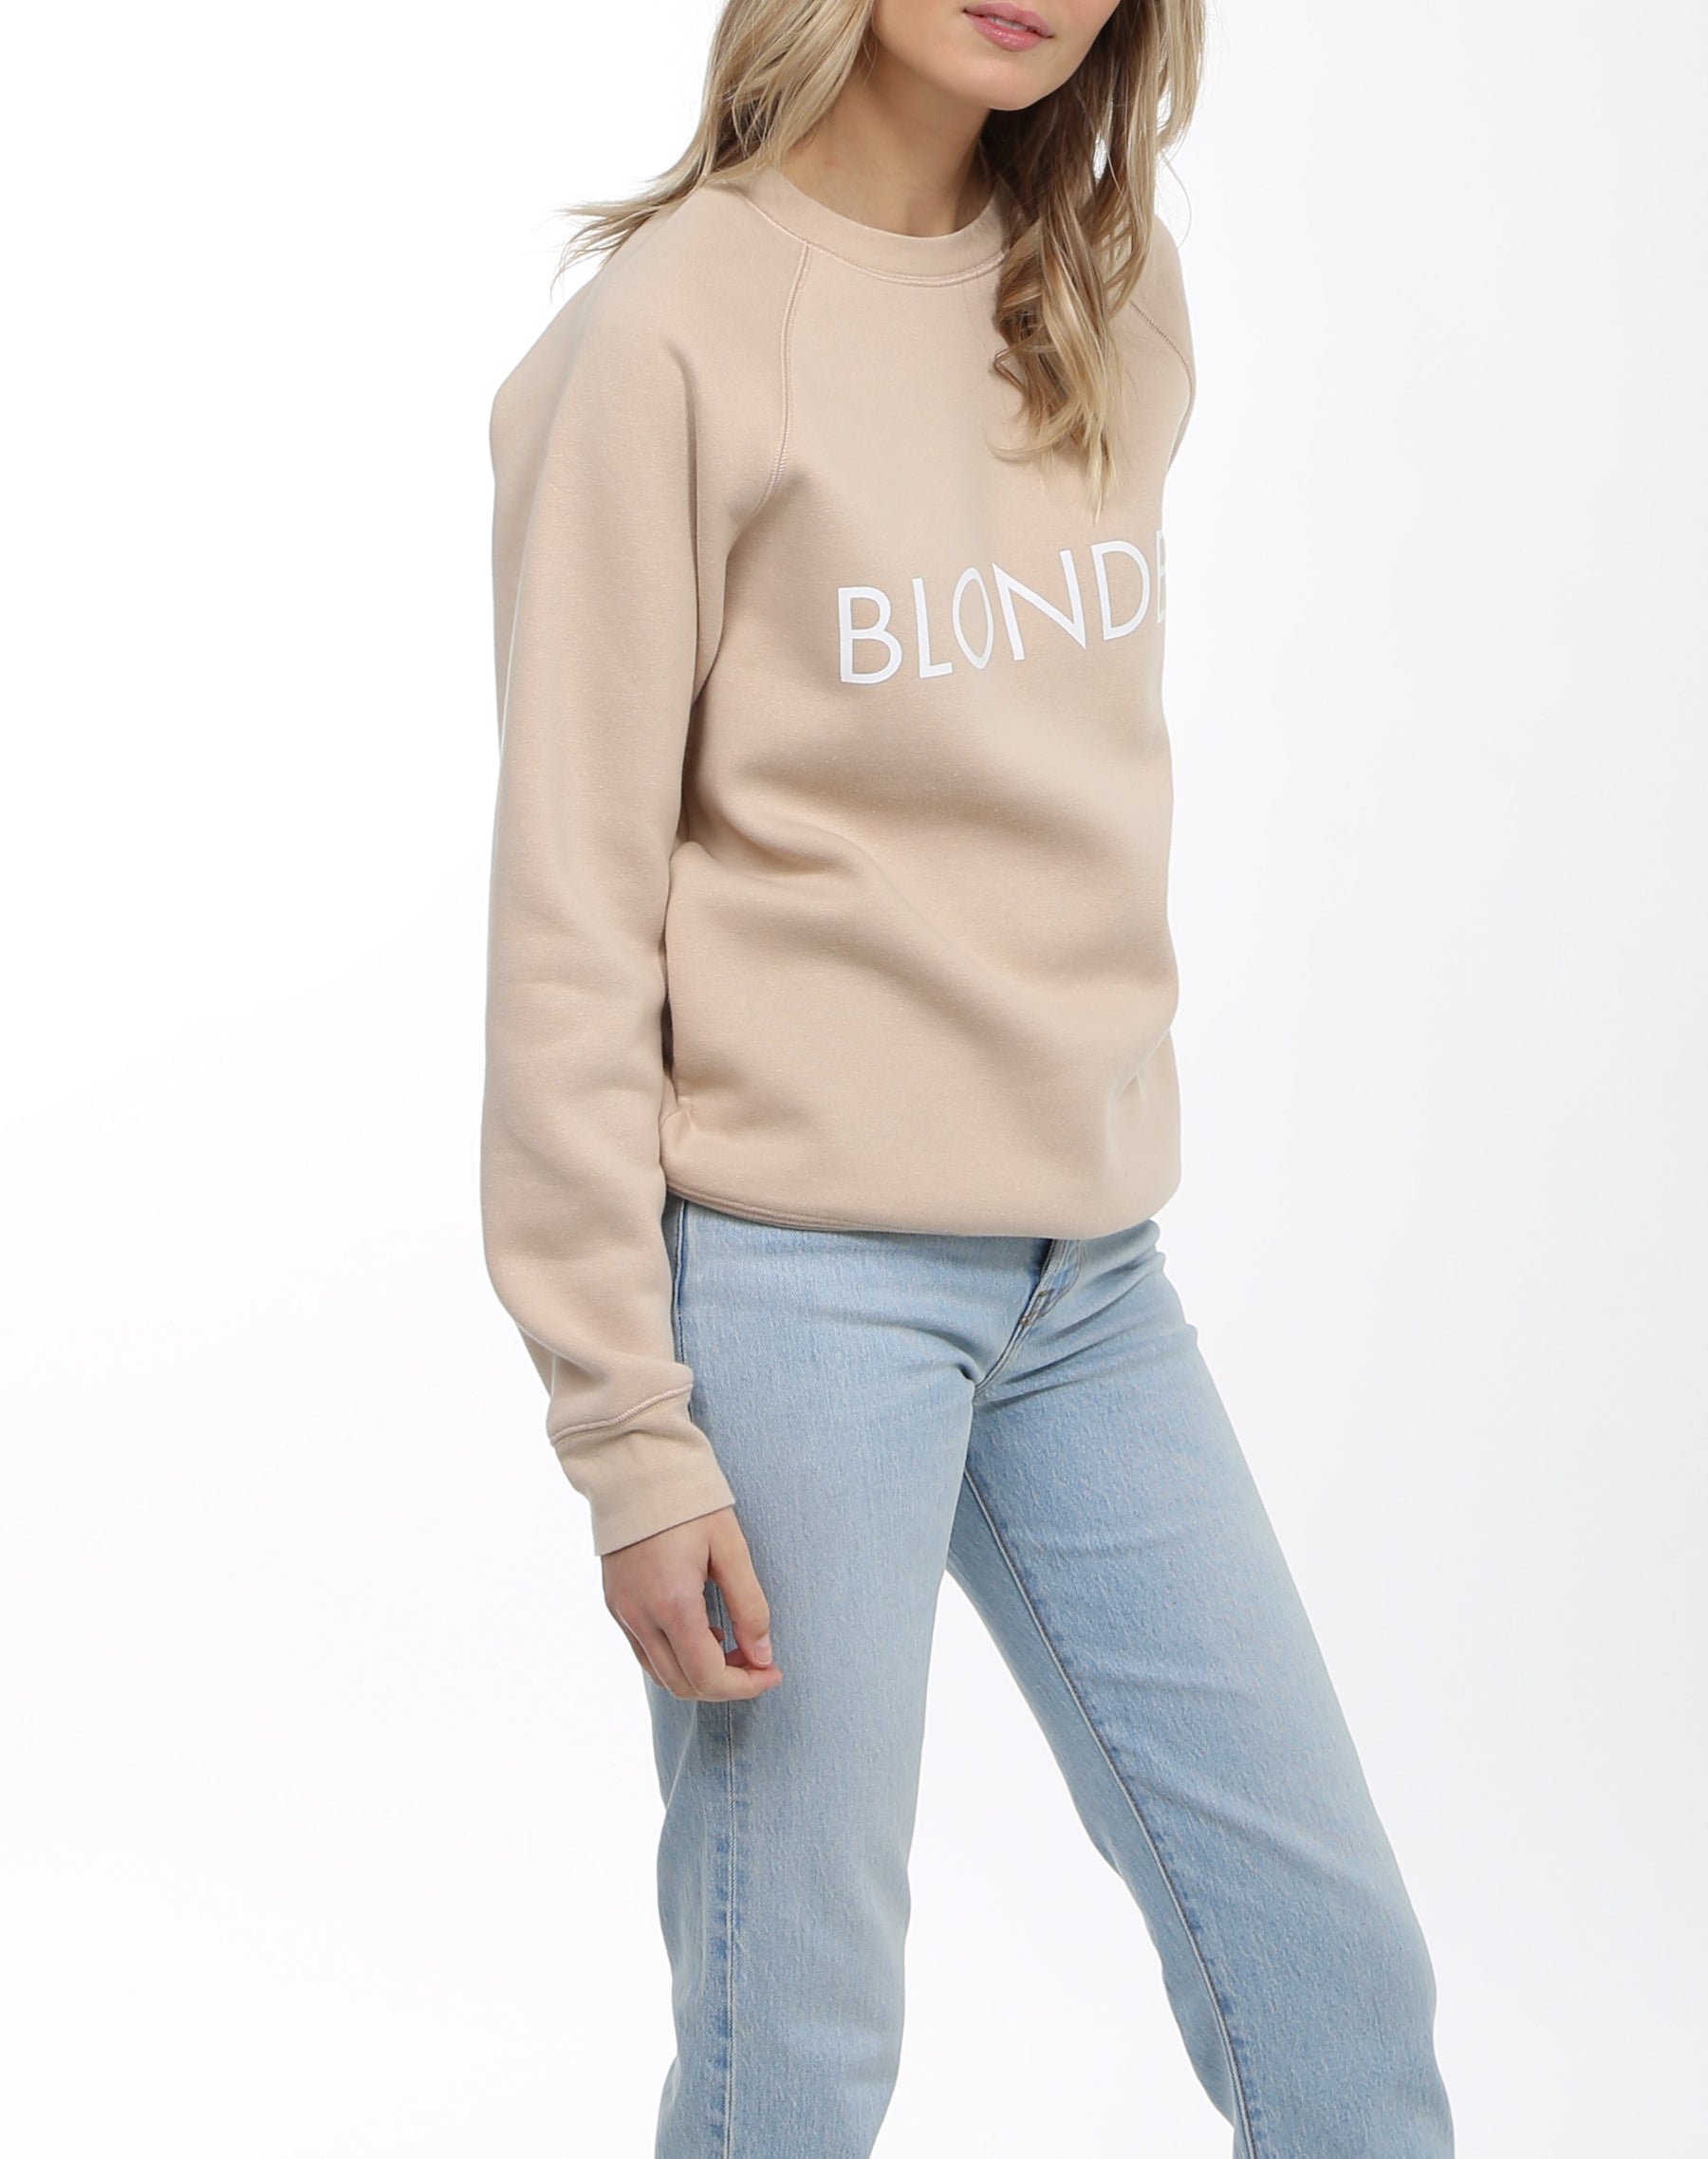 Side photo of the Blonde classic crew neck sweatshirt in toasted almond by Brunette the Label.